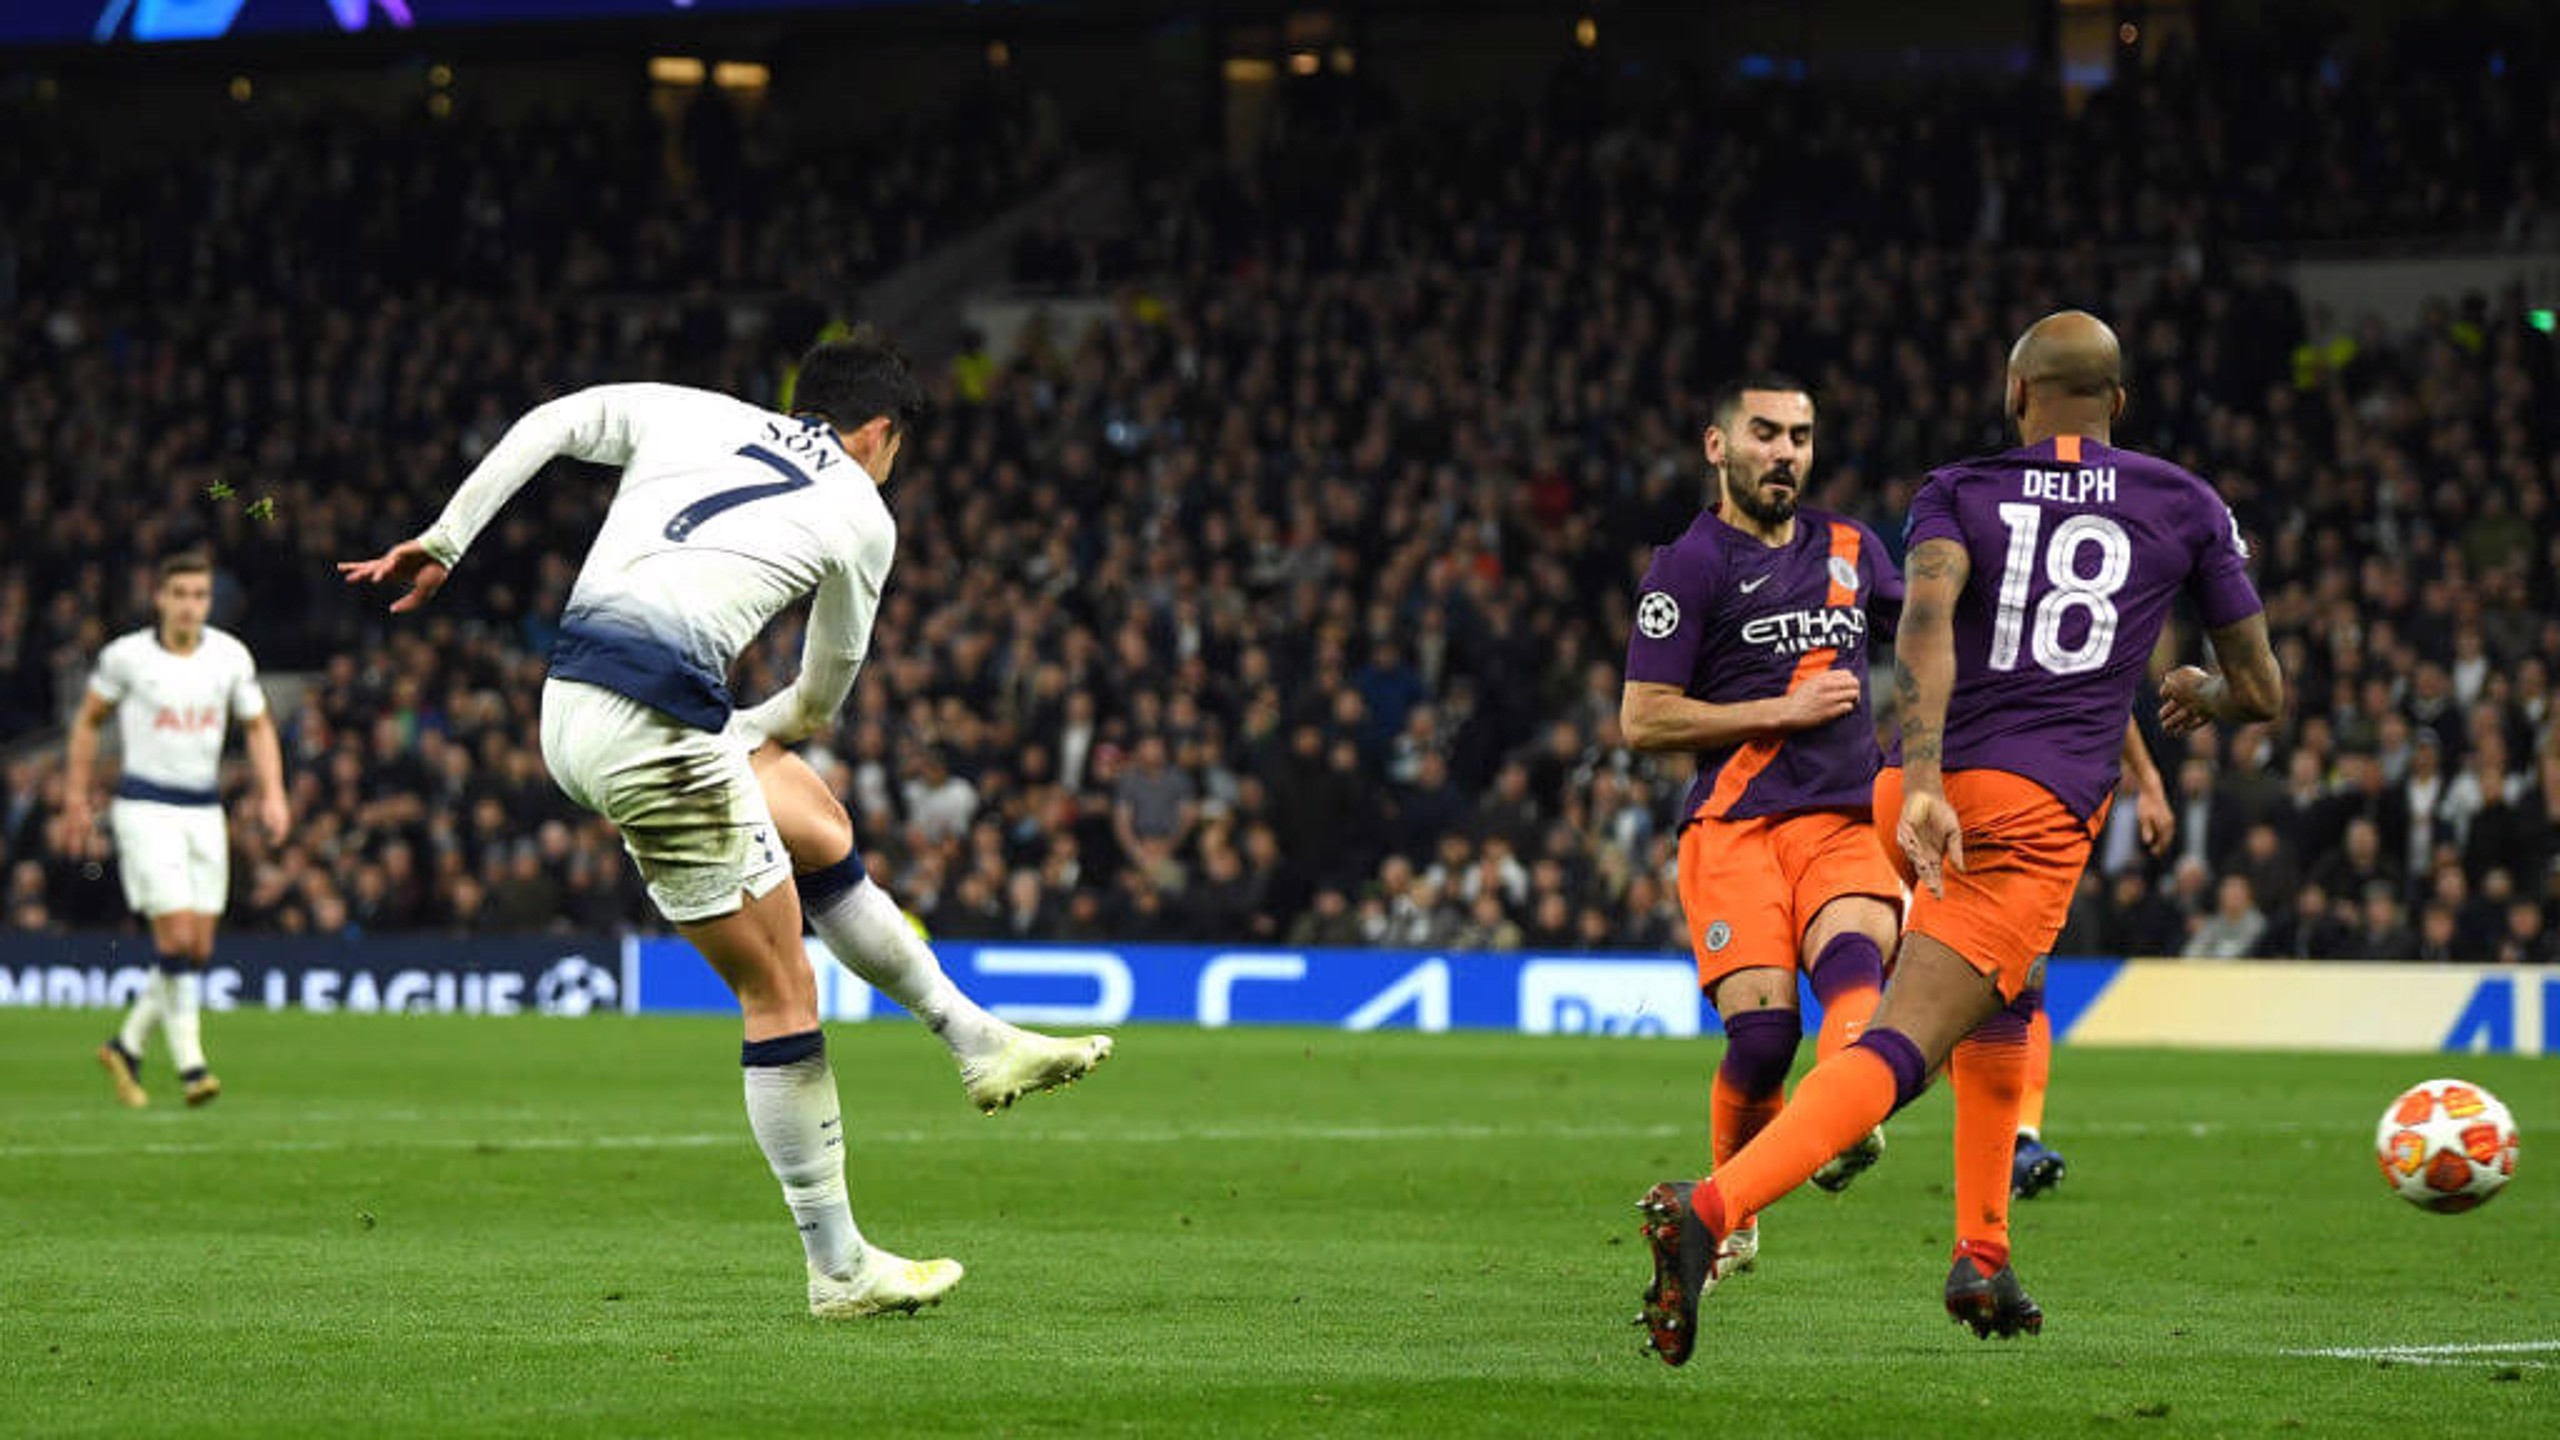 CHAMPIONS LEAGUE: Heung-Min Son's goal saw City lose 1-0 to Spurs in the first leg of our Champions League quarter-final